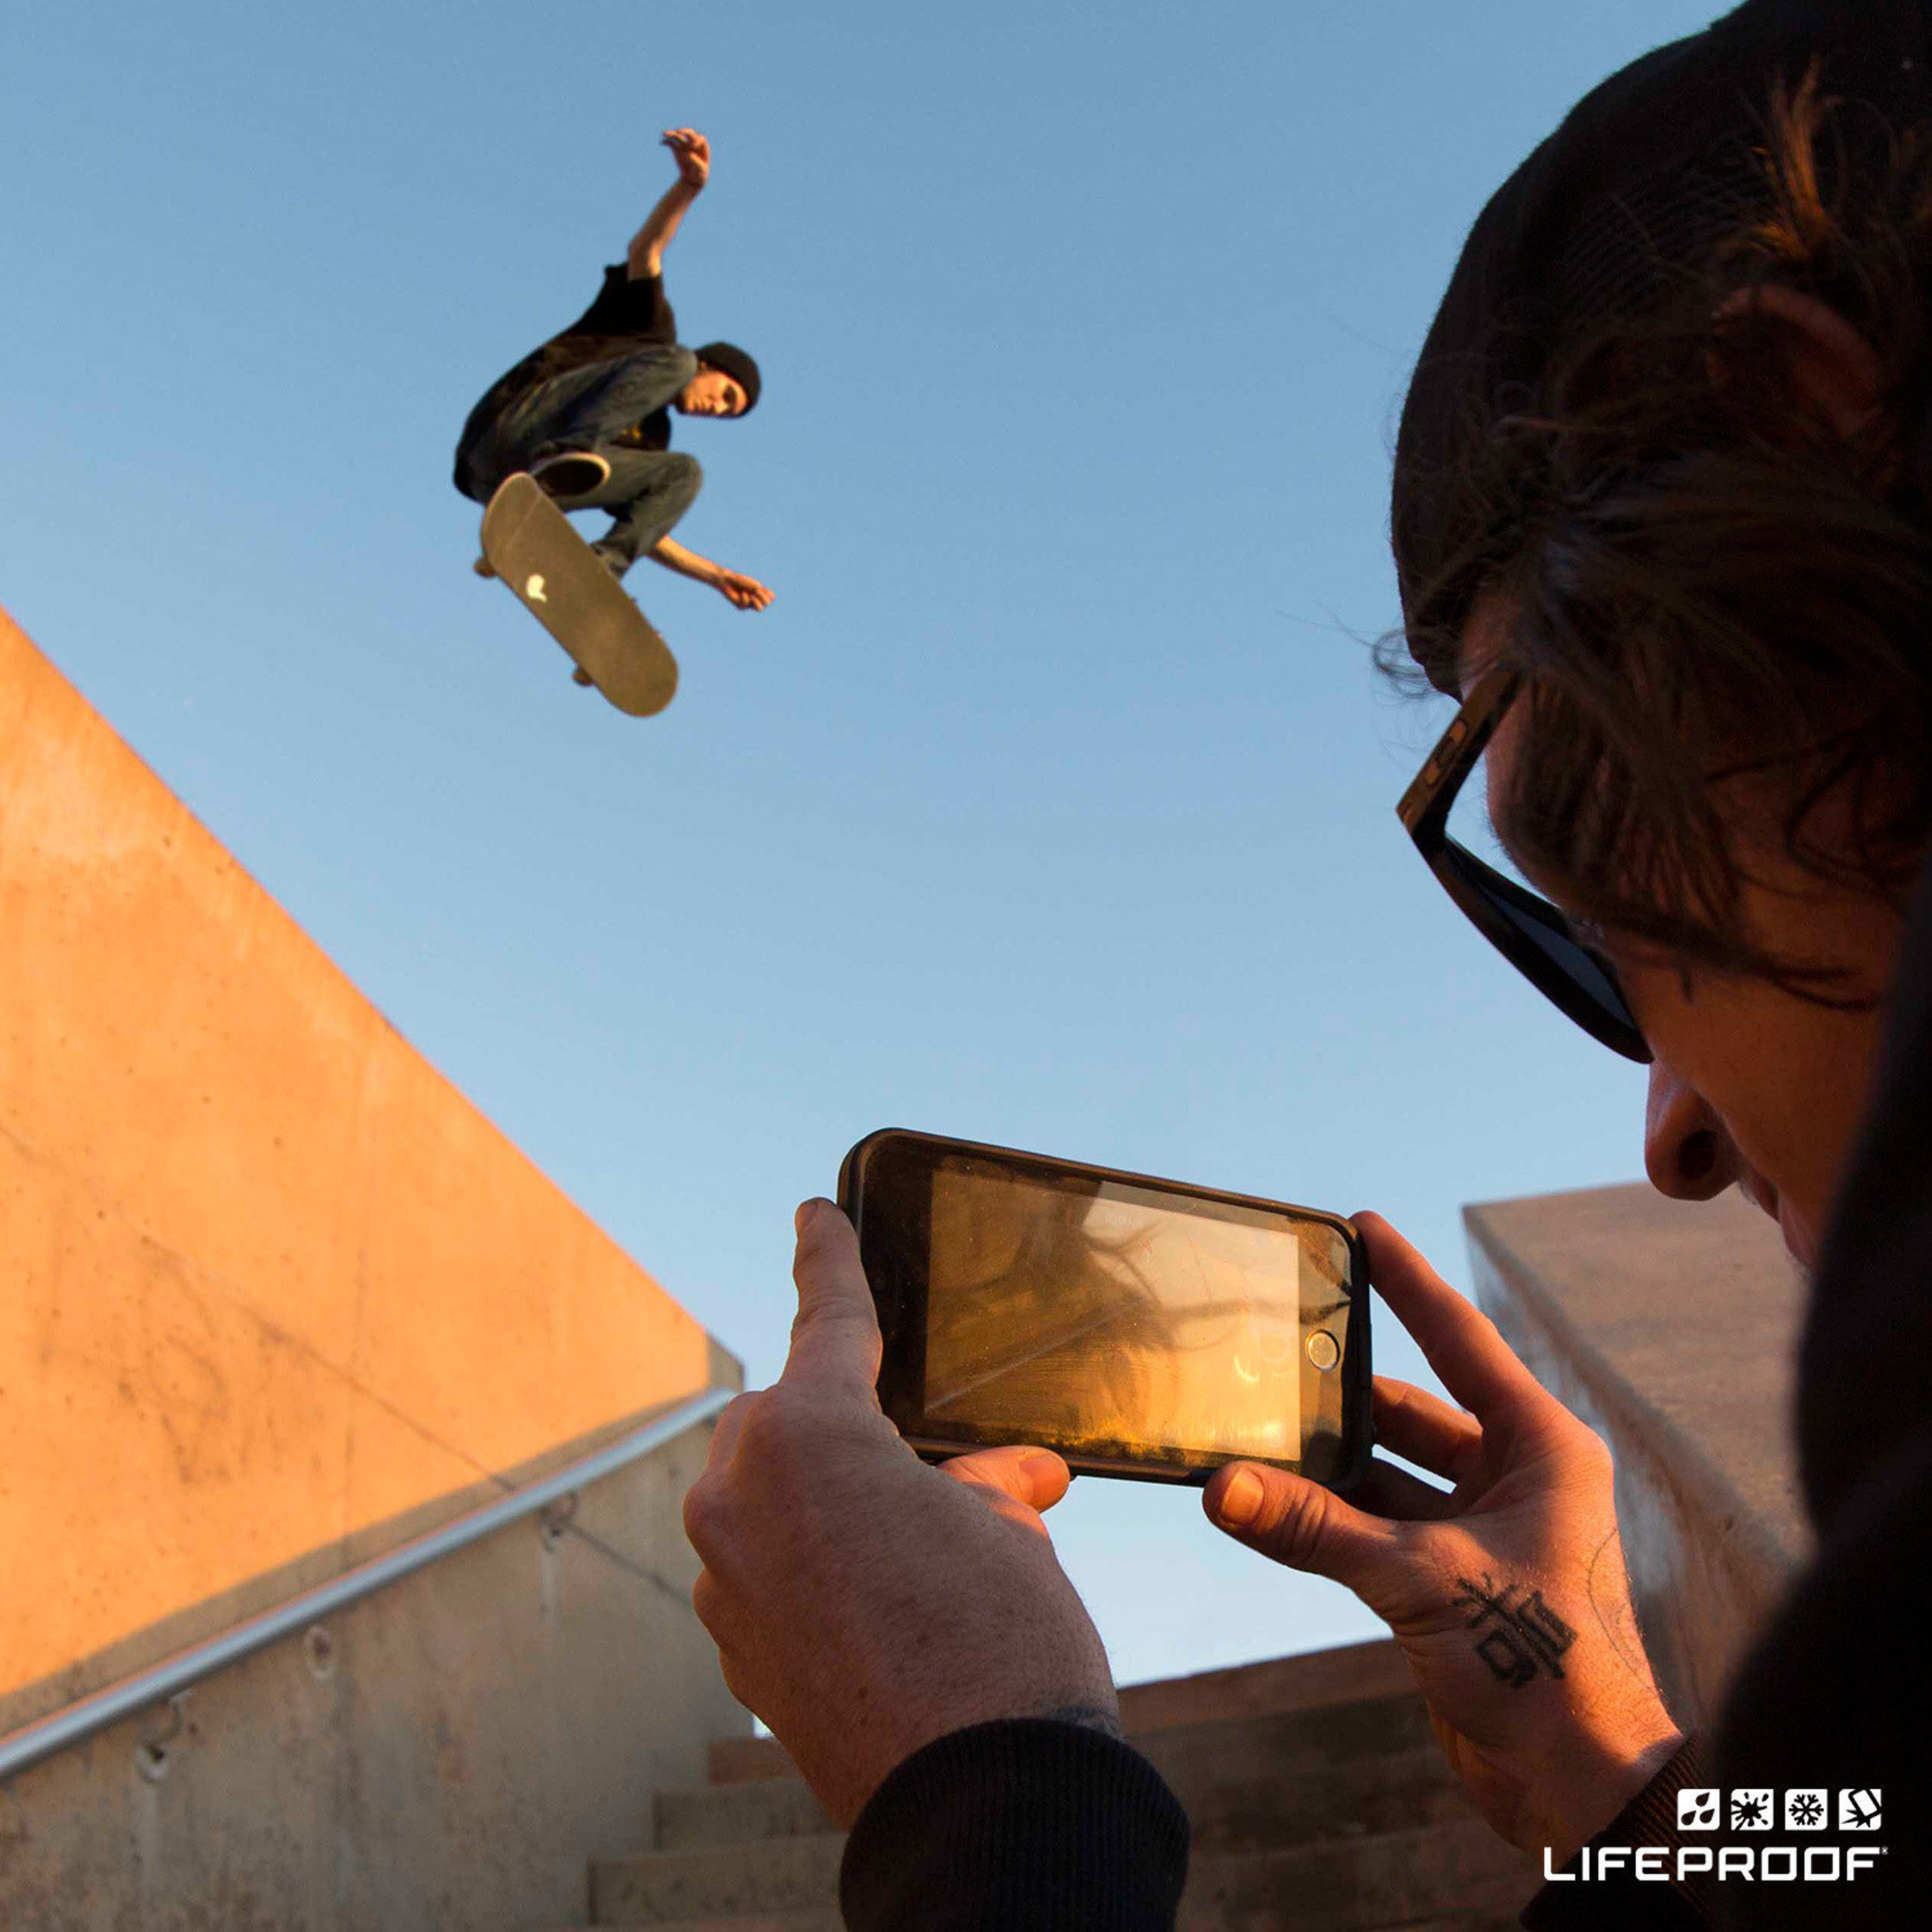 Go back to school on your own terms with LifeProof smartphone case accessories.